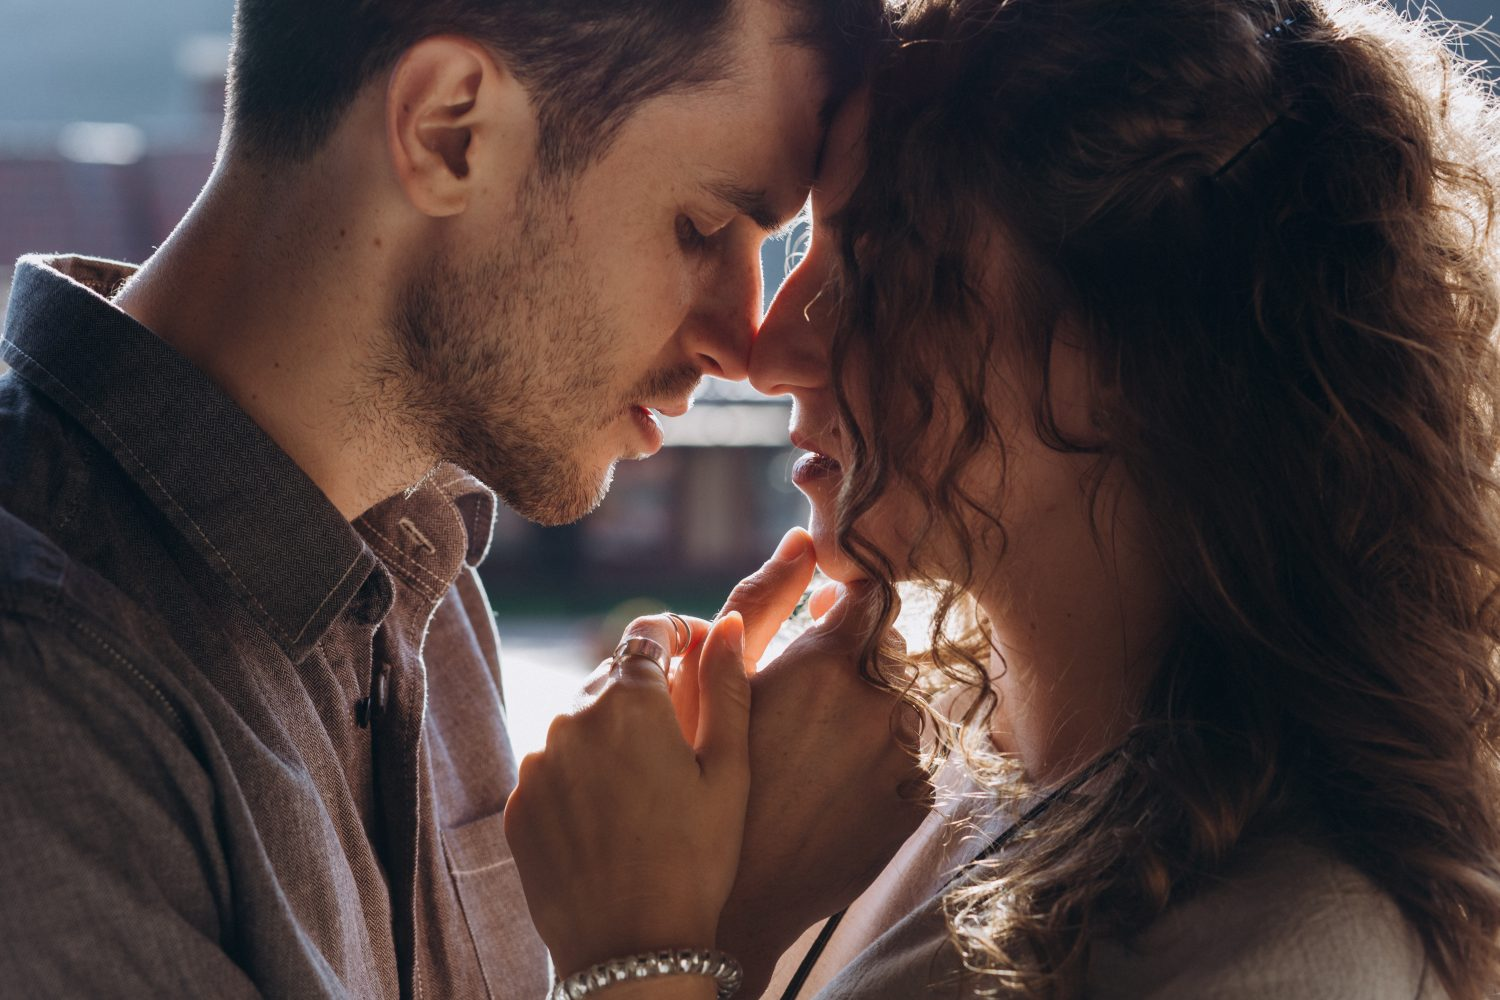 7 Things That Prove You Fell In Love With The Wrong Person